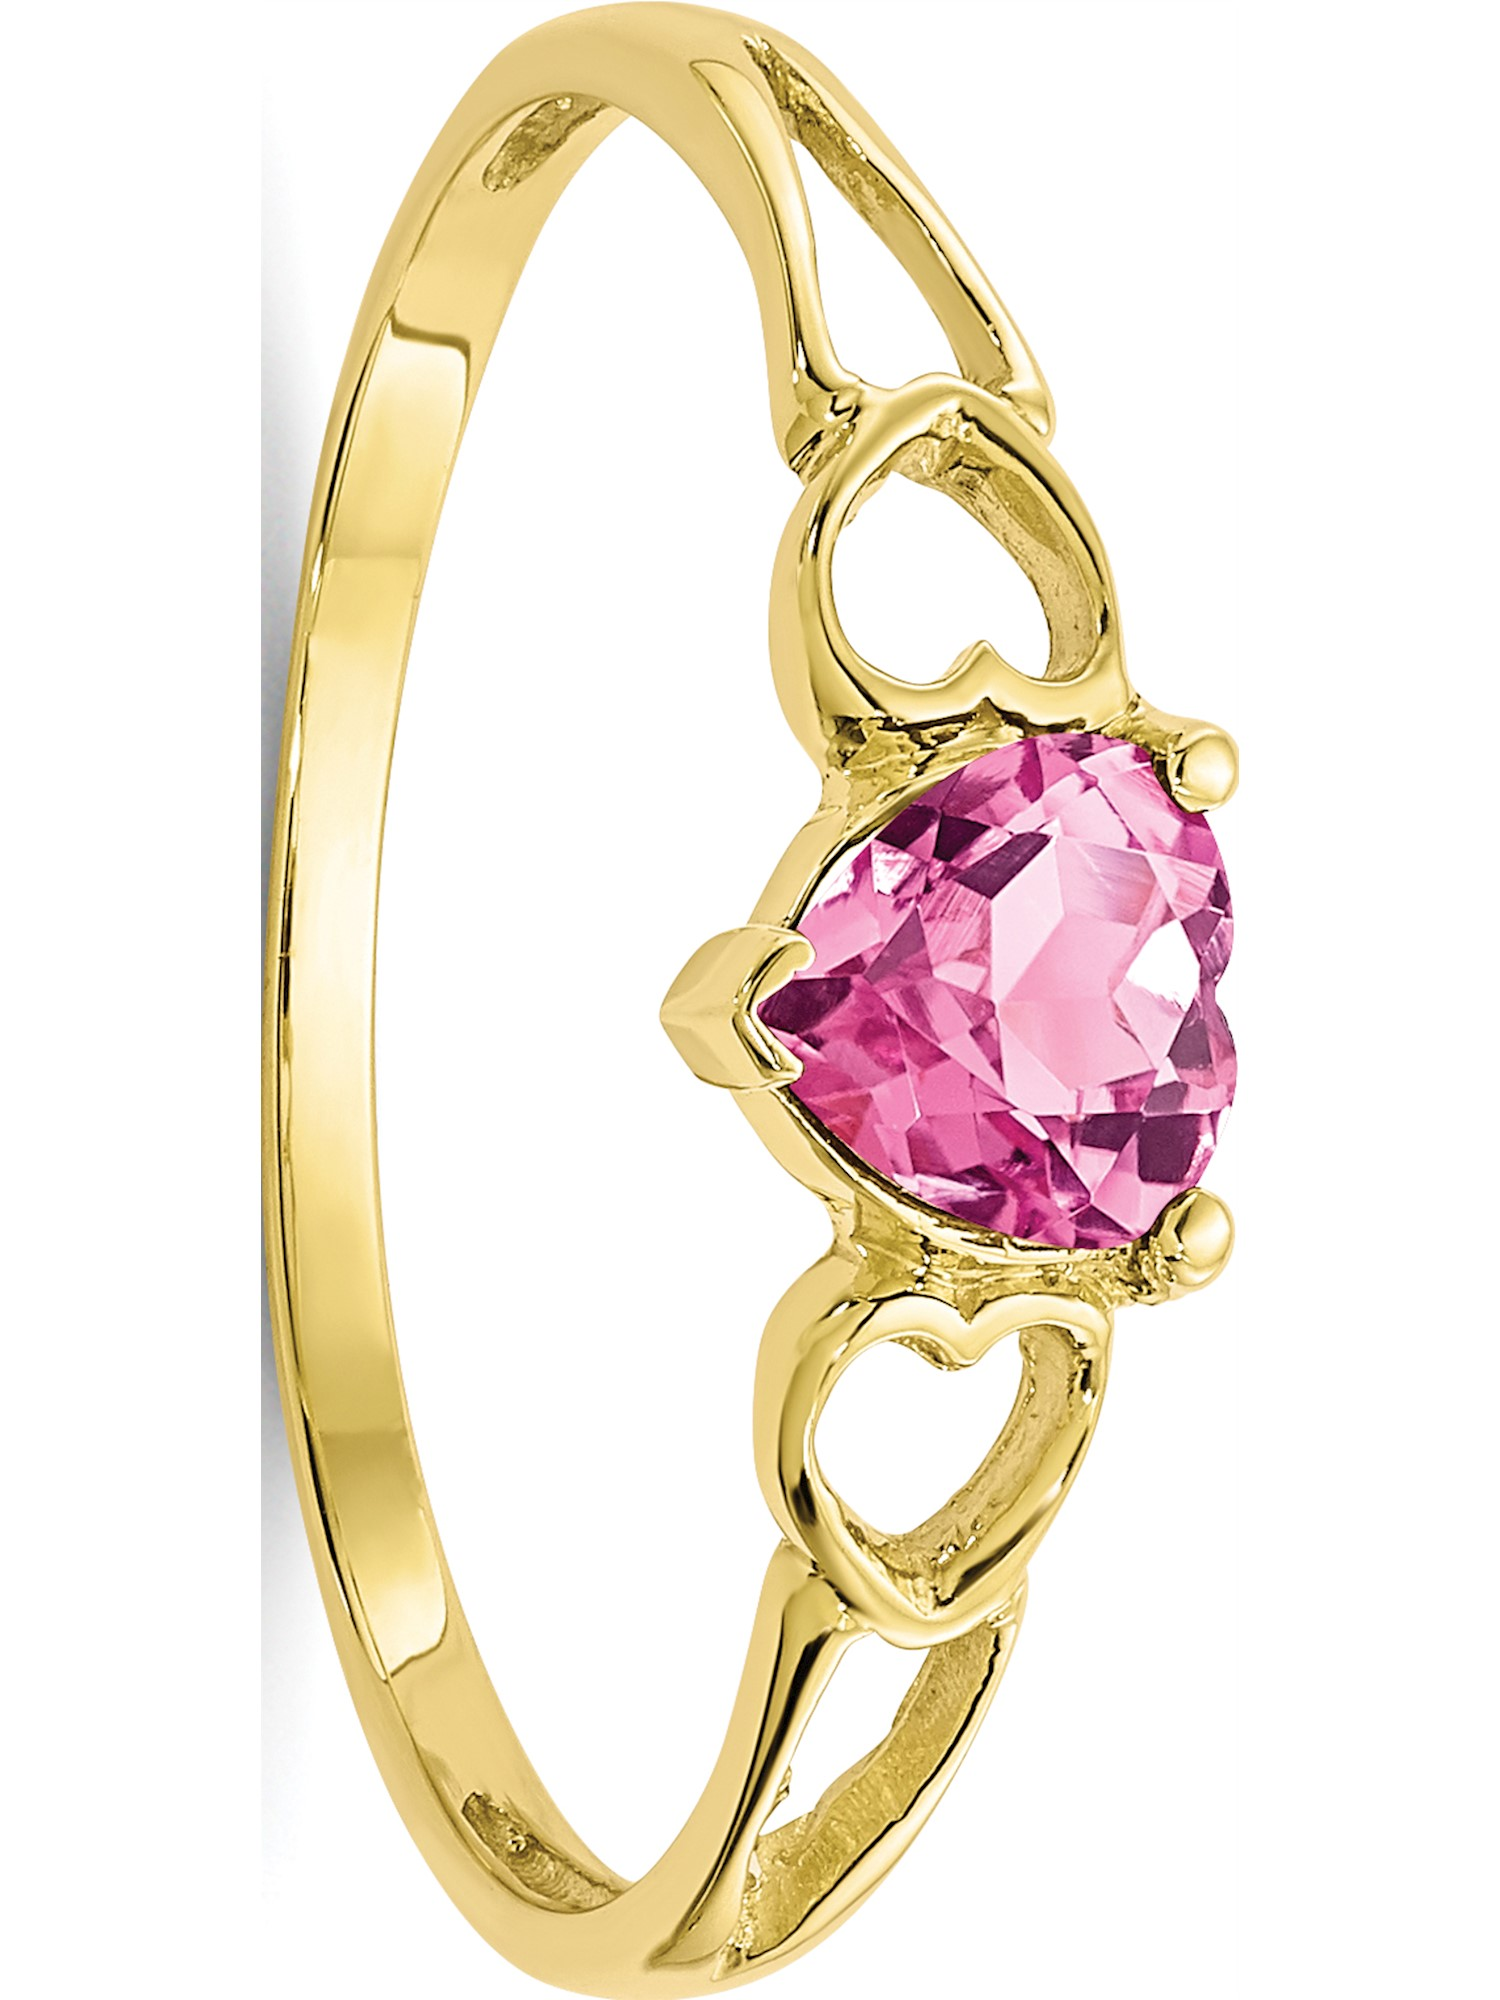 10k Yellow Gold Polished Geniune Pink Tourmaline Birthstone Ring by